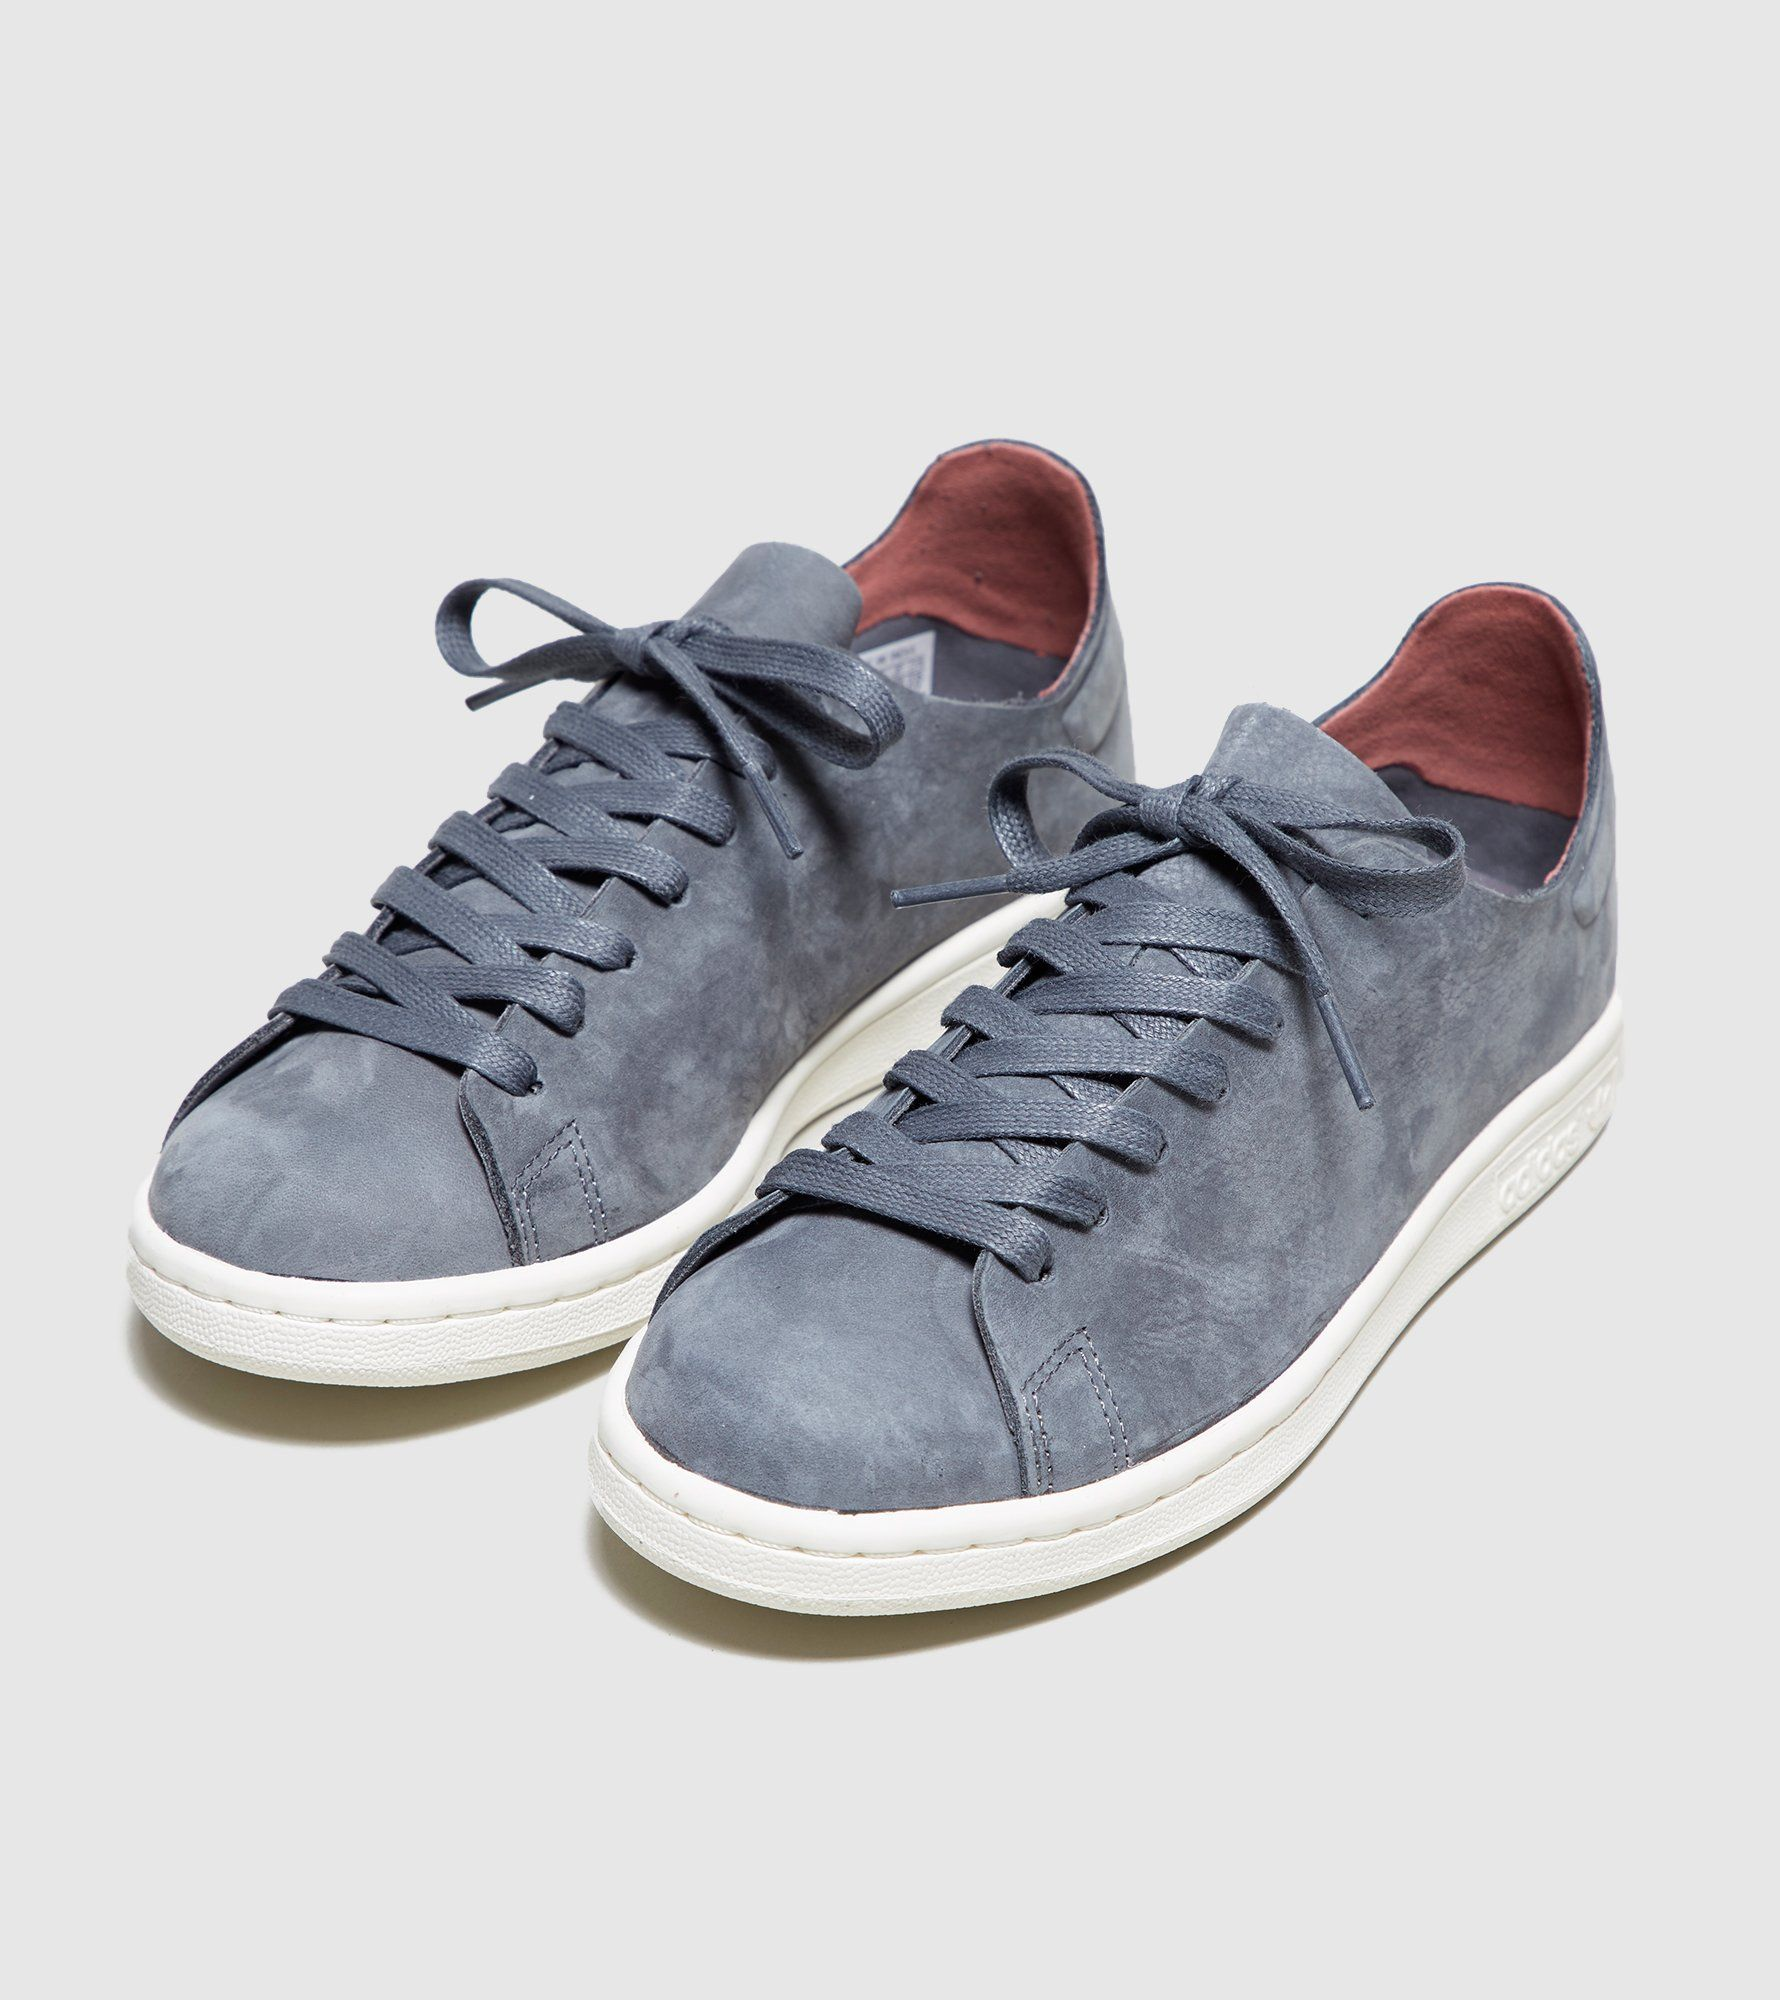 adidas Originals Stan Smith Leather Women's